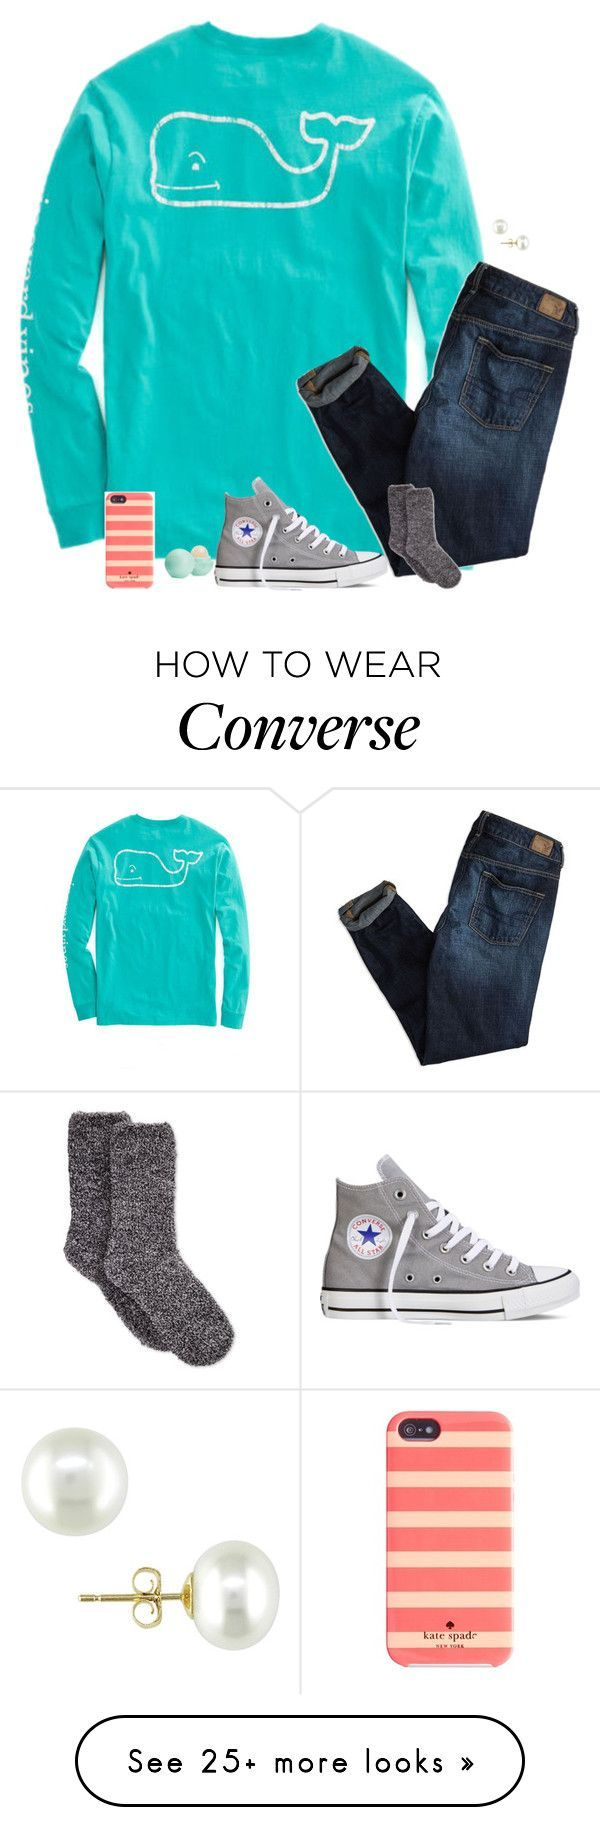 """""""Untitled #144"""" by annakhowton on Polyvore featuring American Eagle Outfitters, Converse, Charter Club, Eos, Kate Spade, Ice, women's clothing, women's fashion, women and female"""